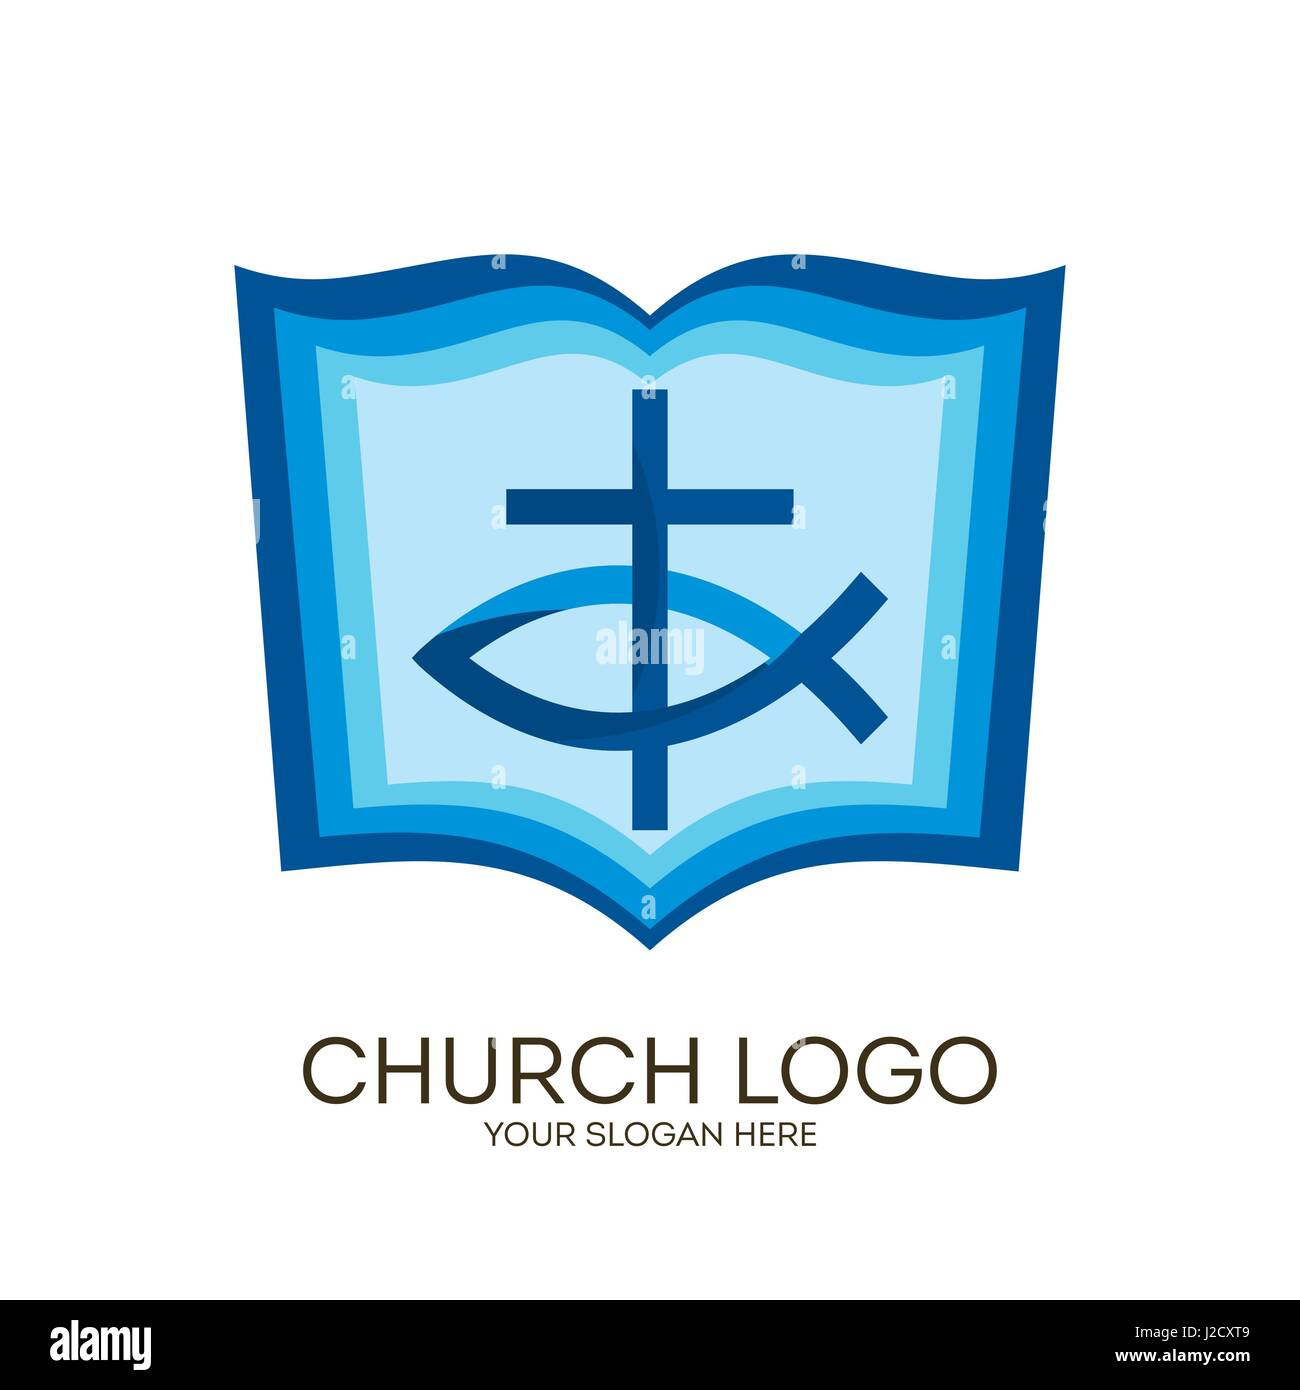 Fish symbol bible gallery symbols and meanings church logo christian symbols bible cross and jesus fish stock christian symbols bible cross and jesus biocorpaavc Image collections